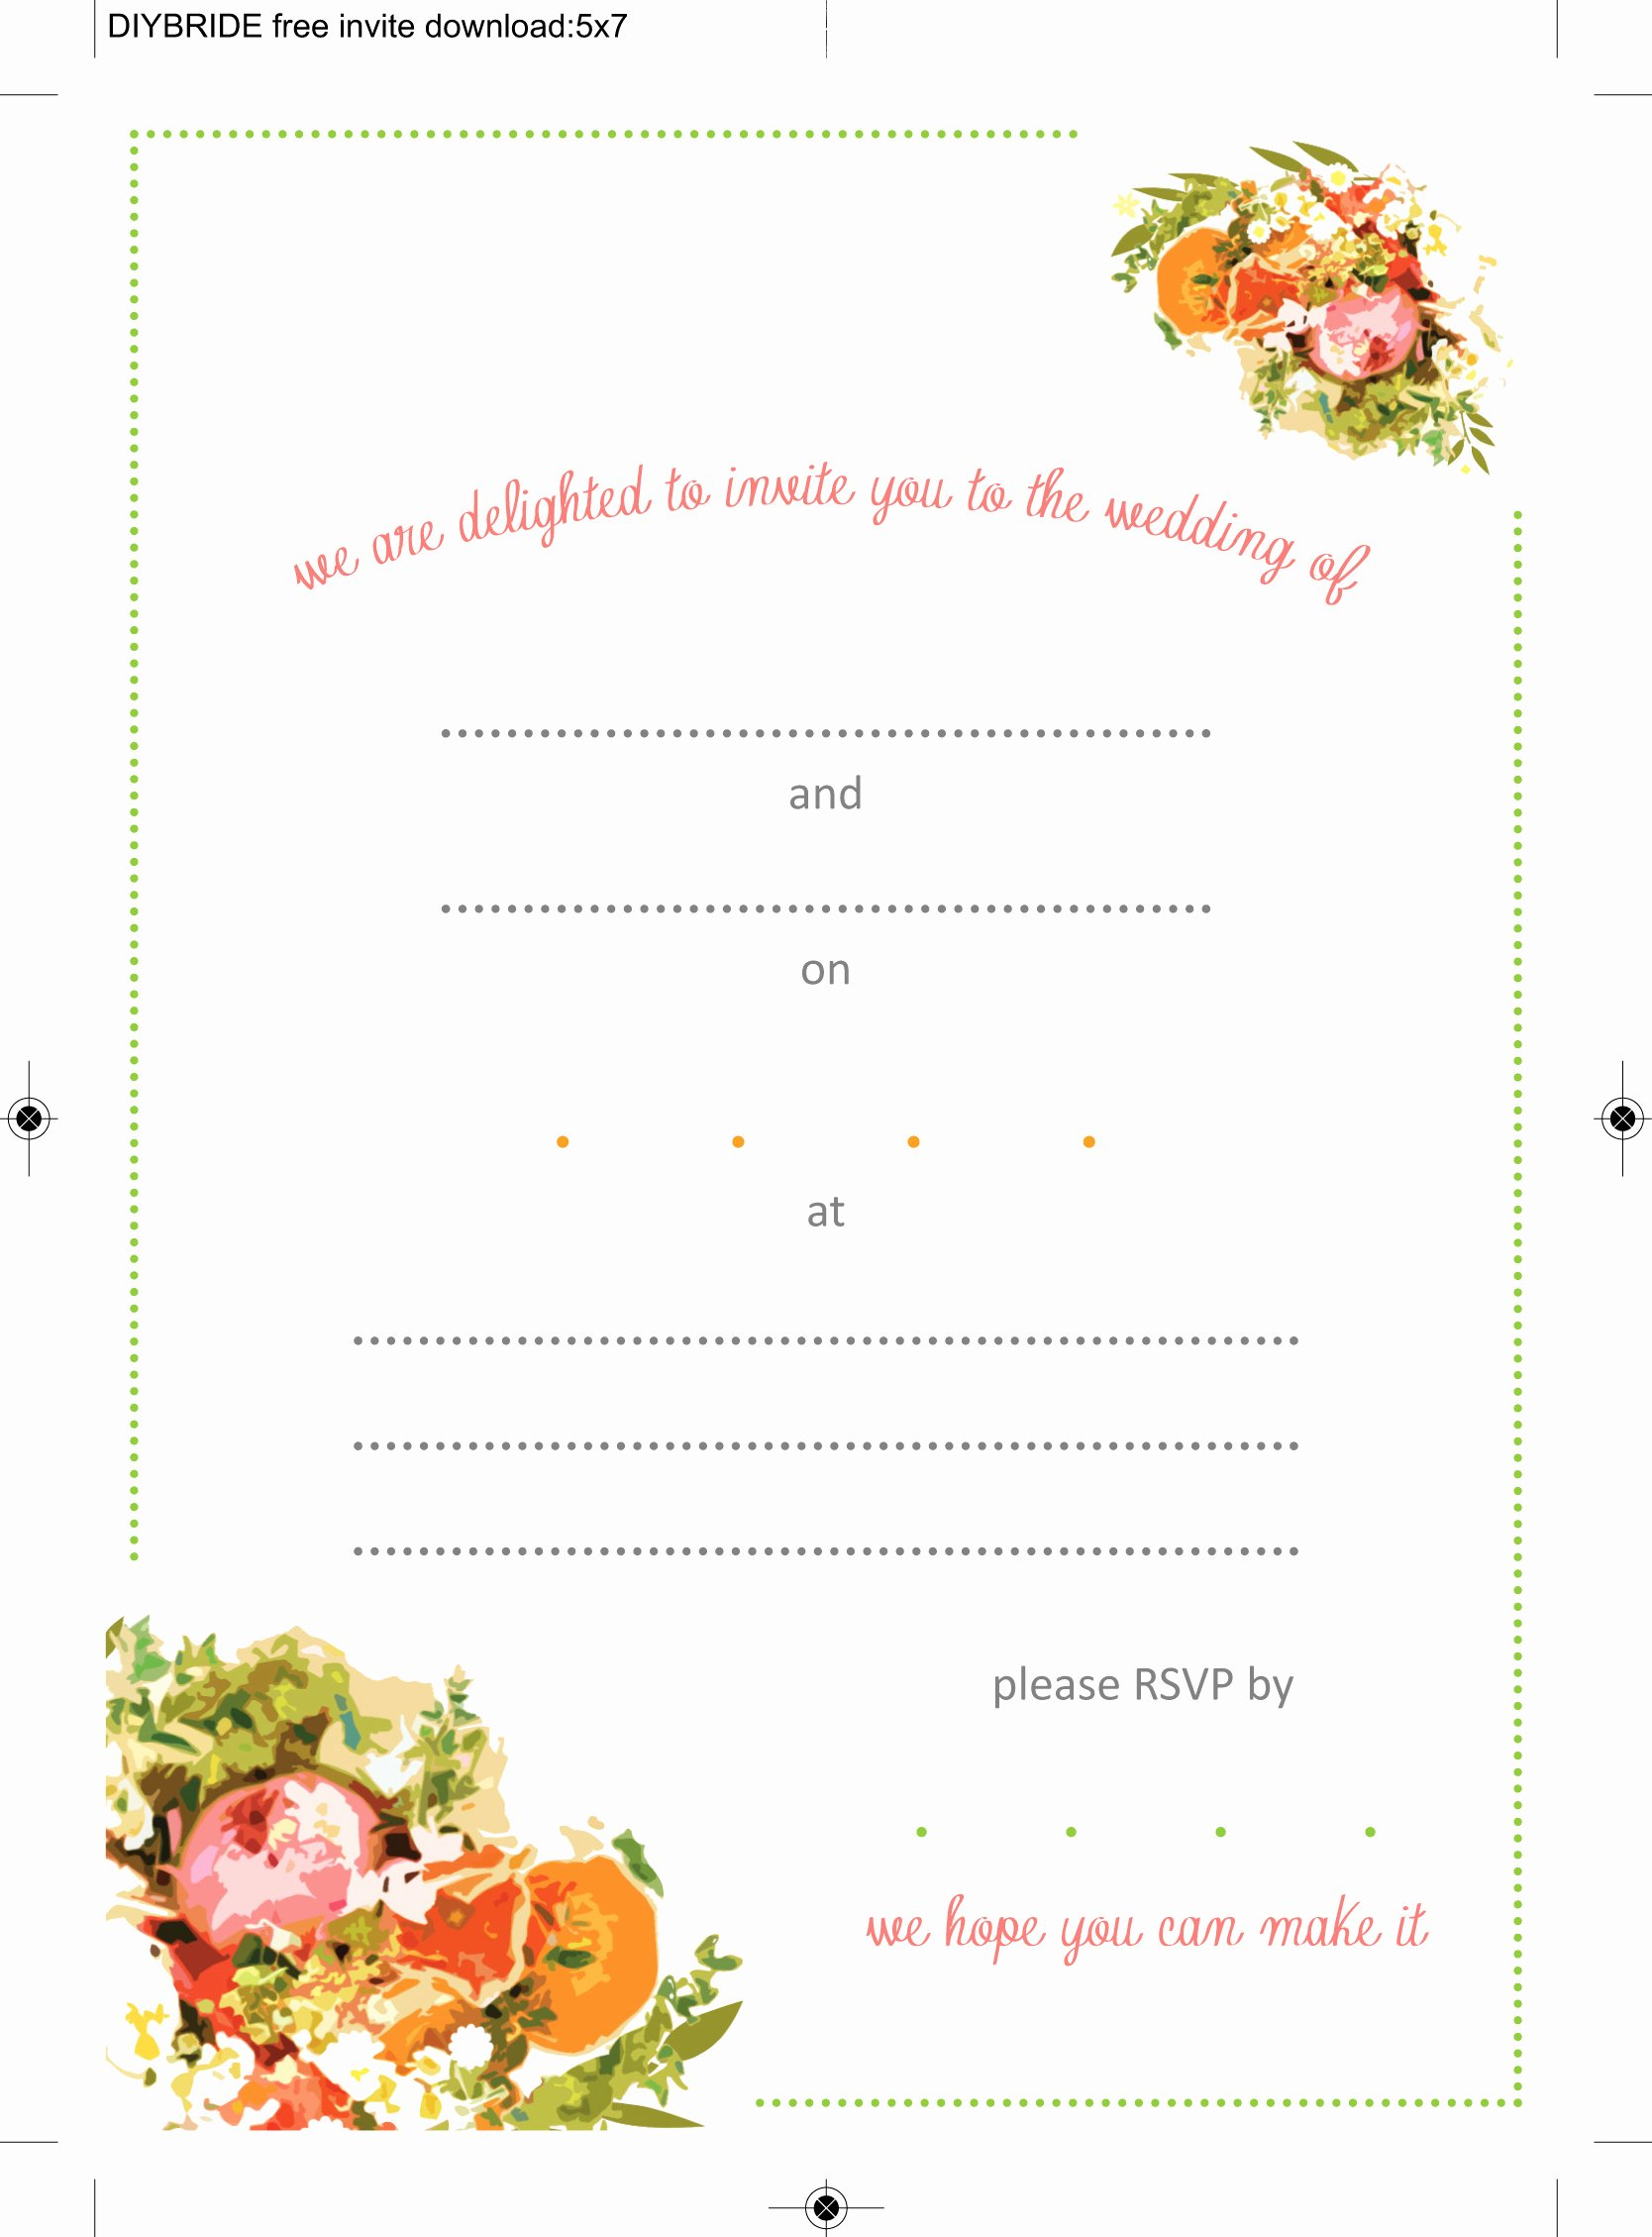 Printable Wedding Invitations Template Elegant Wedding Invitation Templates that are Cute and Easy to